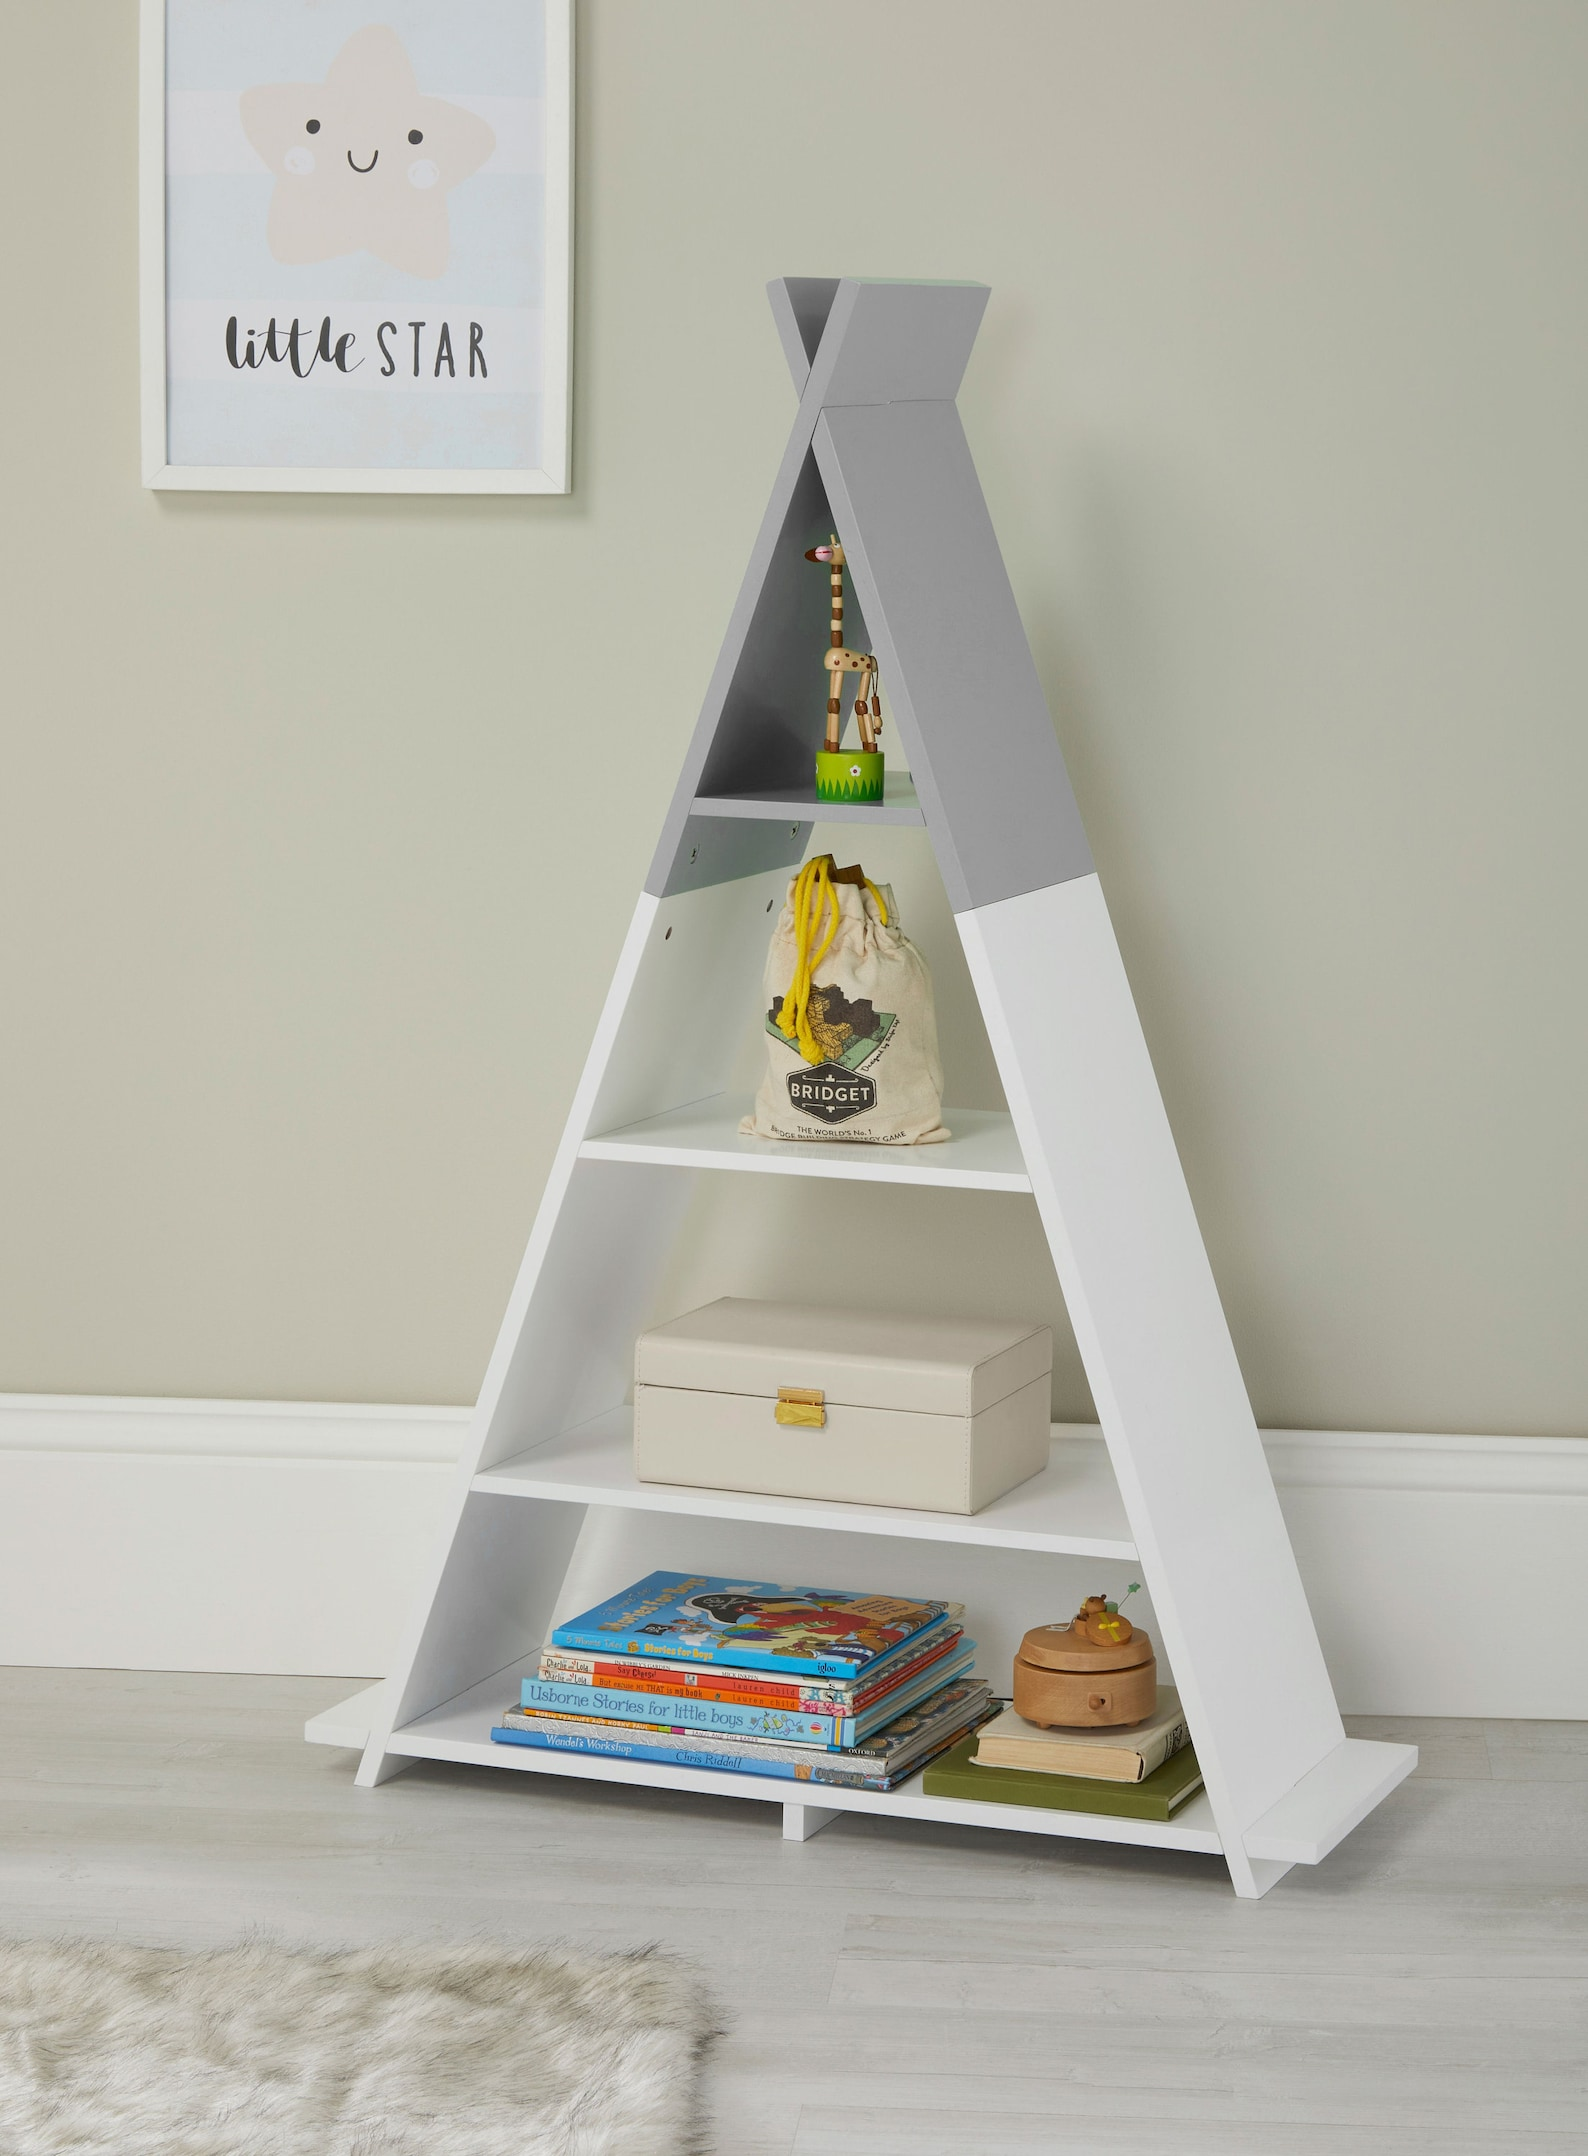 Childrens Kids Bedroom Nursery Floor Standing Tipi Storage Shelving White & Grey Green